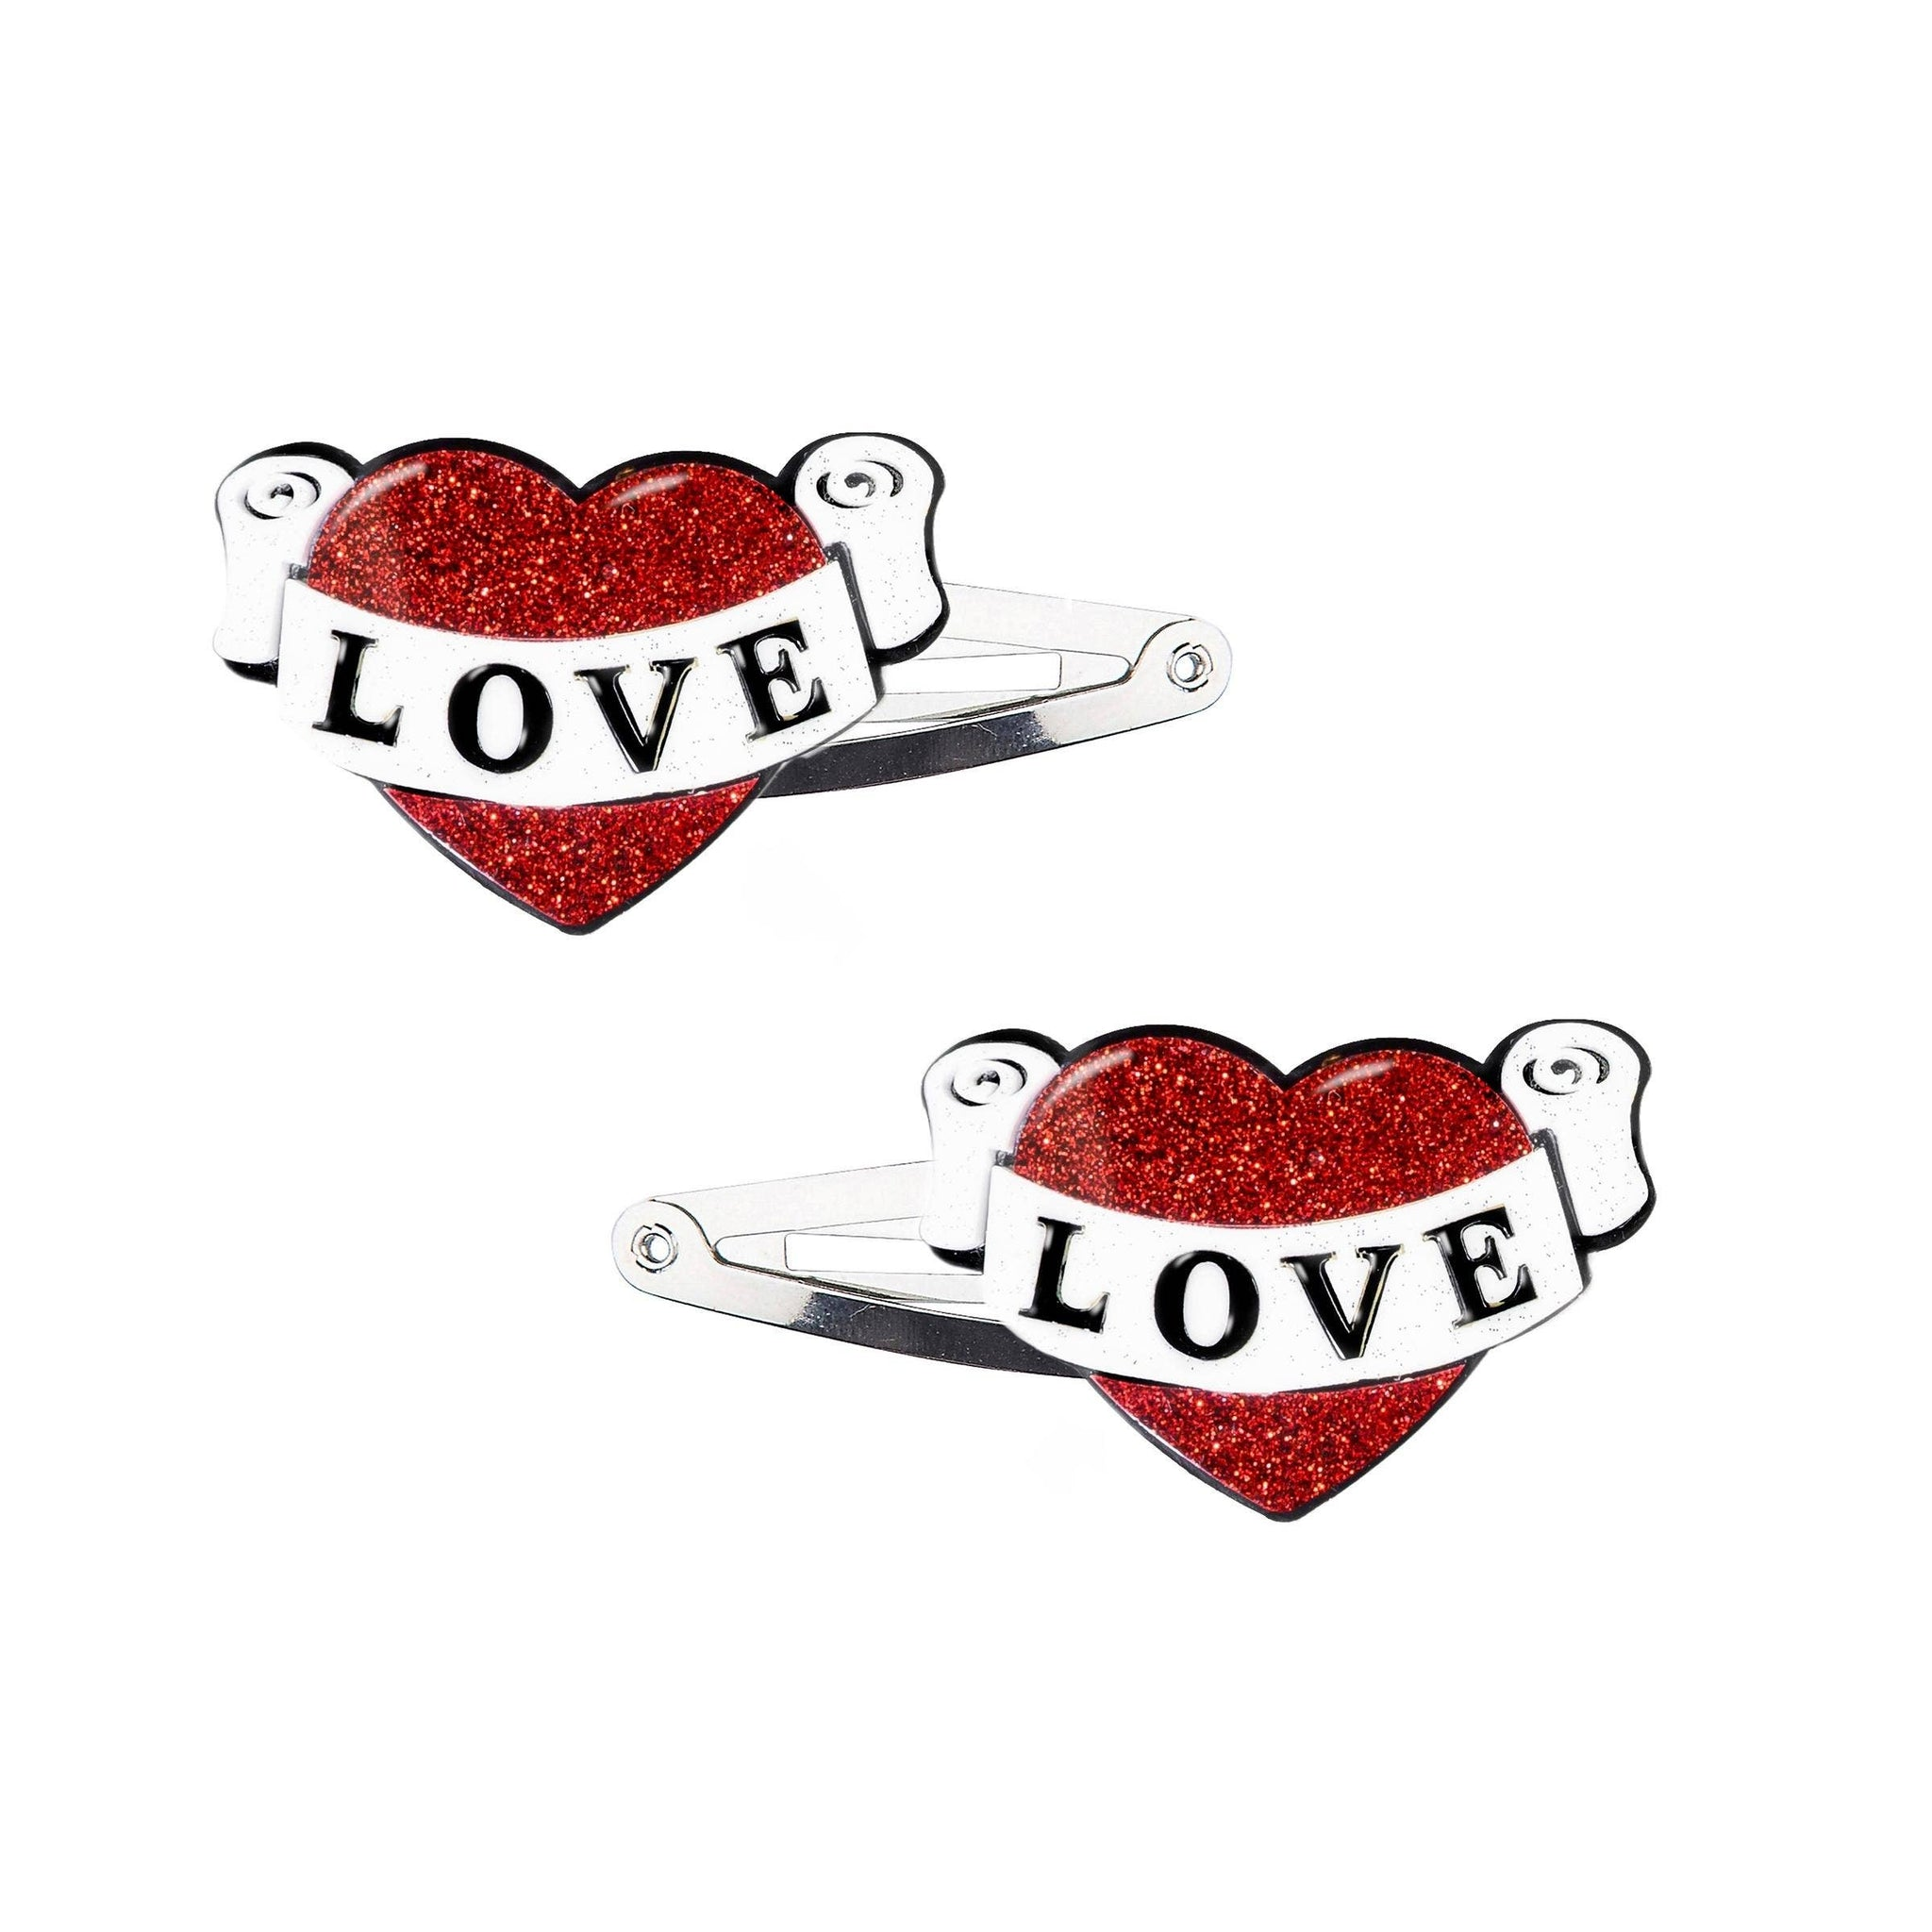 SALE - Vintage Heart Snap Clips